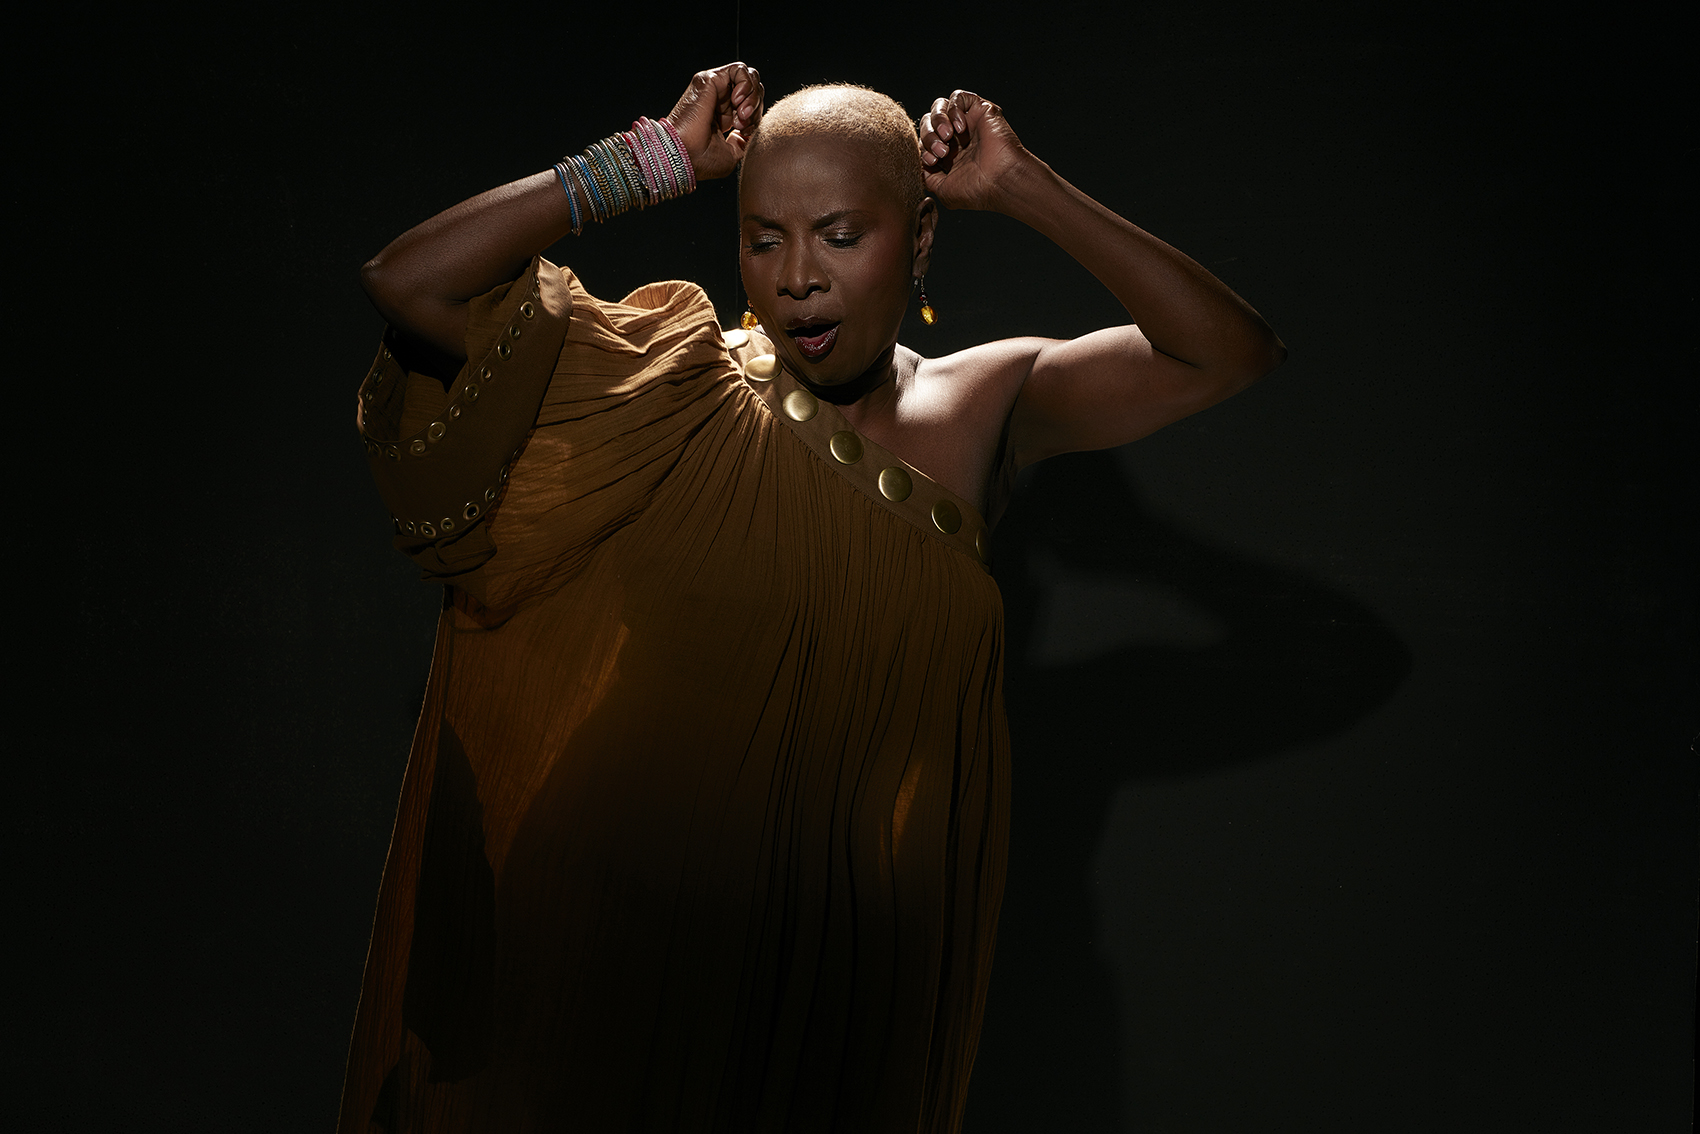 Angélique Kidjo pays tribute to the songs of salsa star Celia Cruz on her new album. (Laurent Seroussi/Courtesy of the artist)